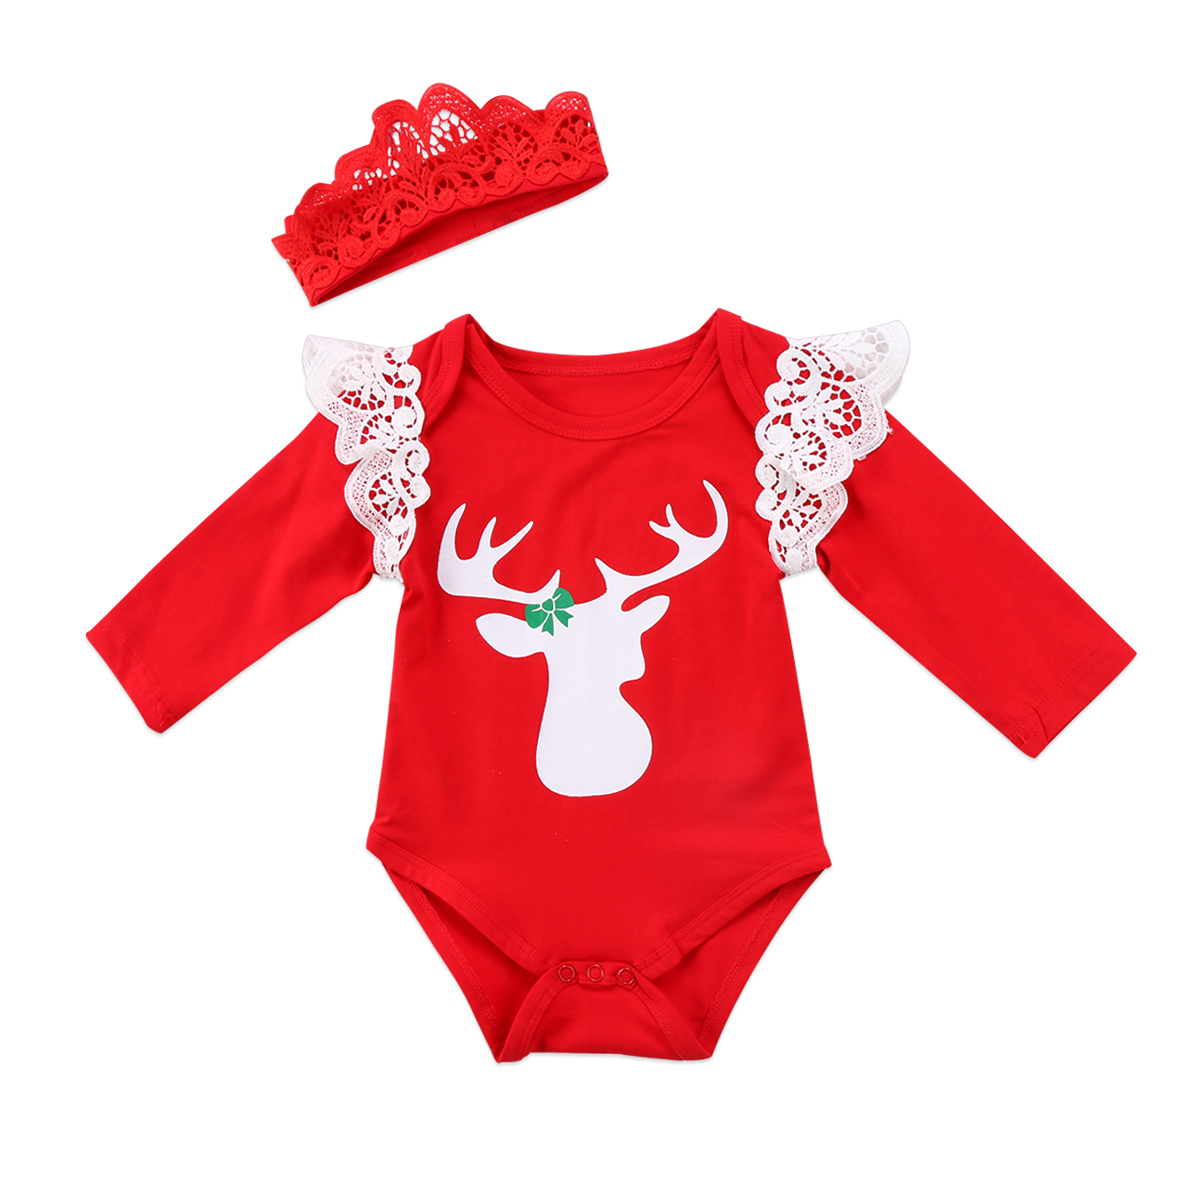 Princess Christmas baby girl lace romper Newborn infant Girl cartoon Xmas Deer Romper+headband christmas baby girl clothes red baby romper girl rompers christmas baby clothes newborn christmas baby gift new born cotton baby christmas clothes 1pcs lot a mc